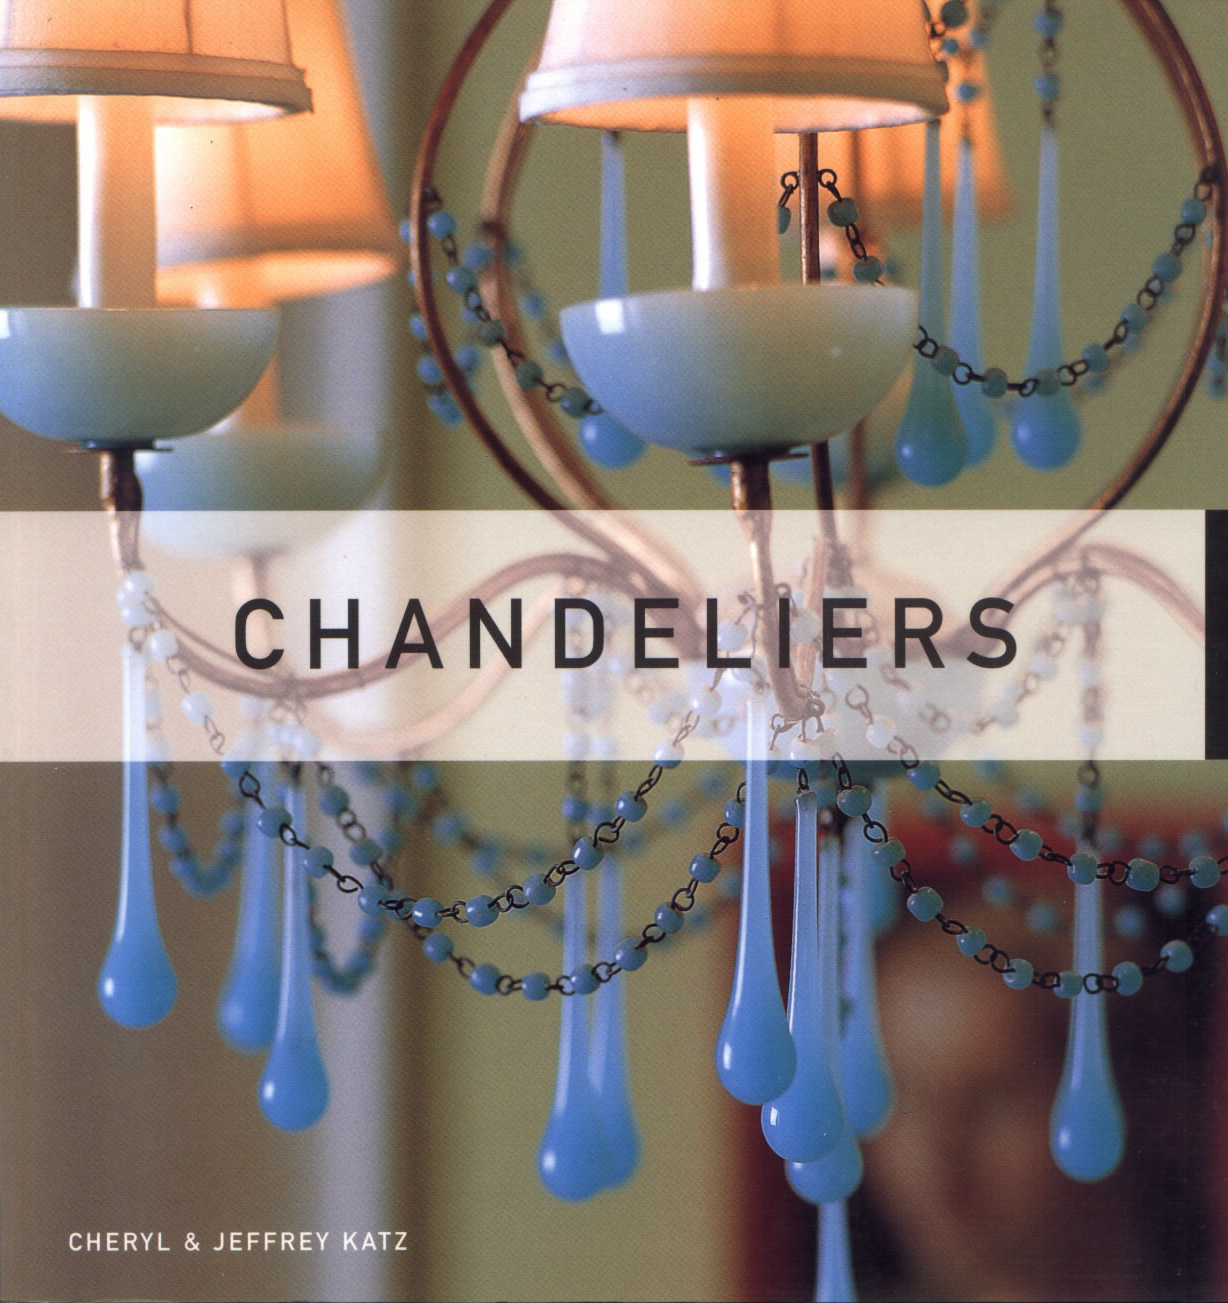 Chandeliers_cover_large